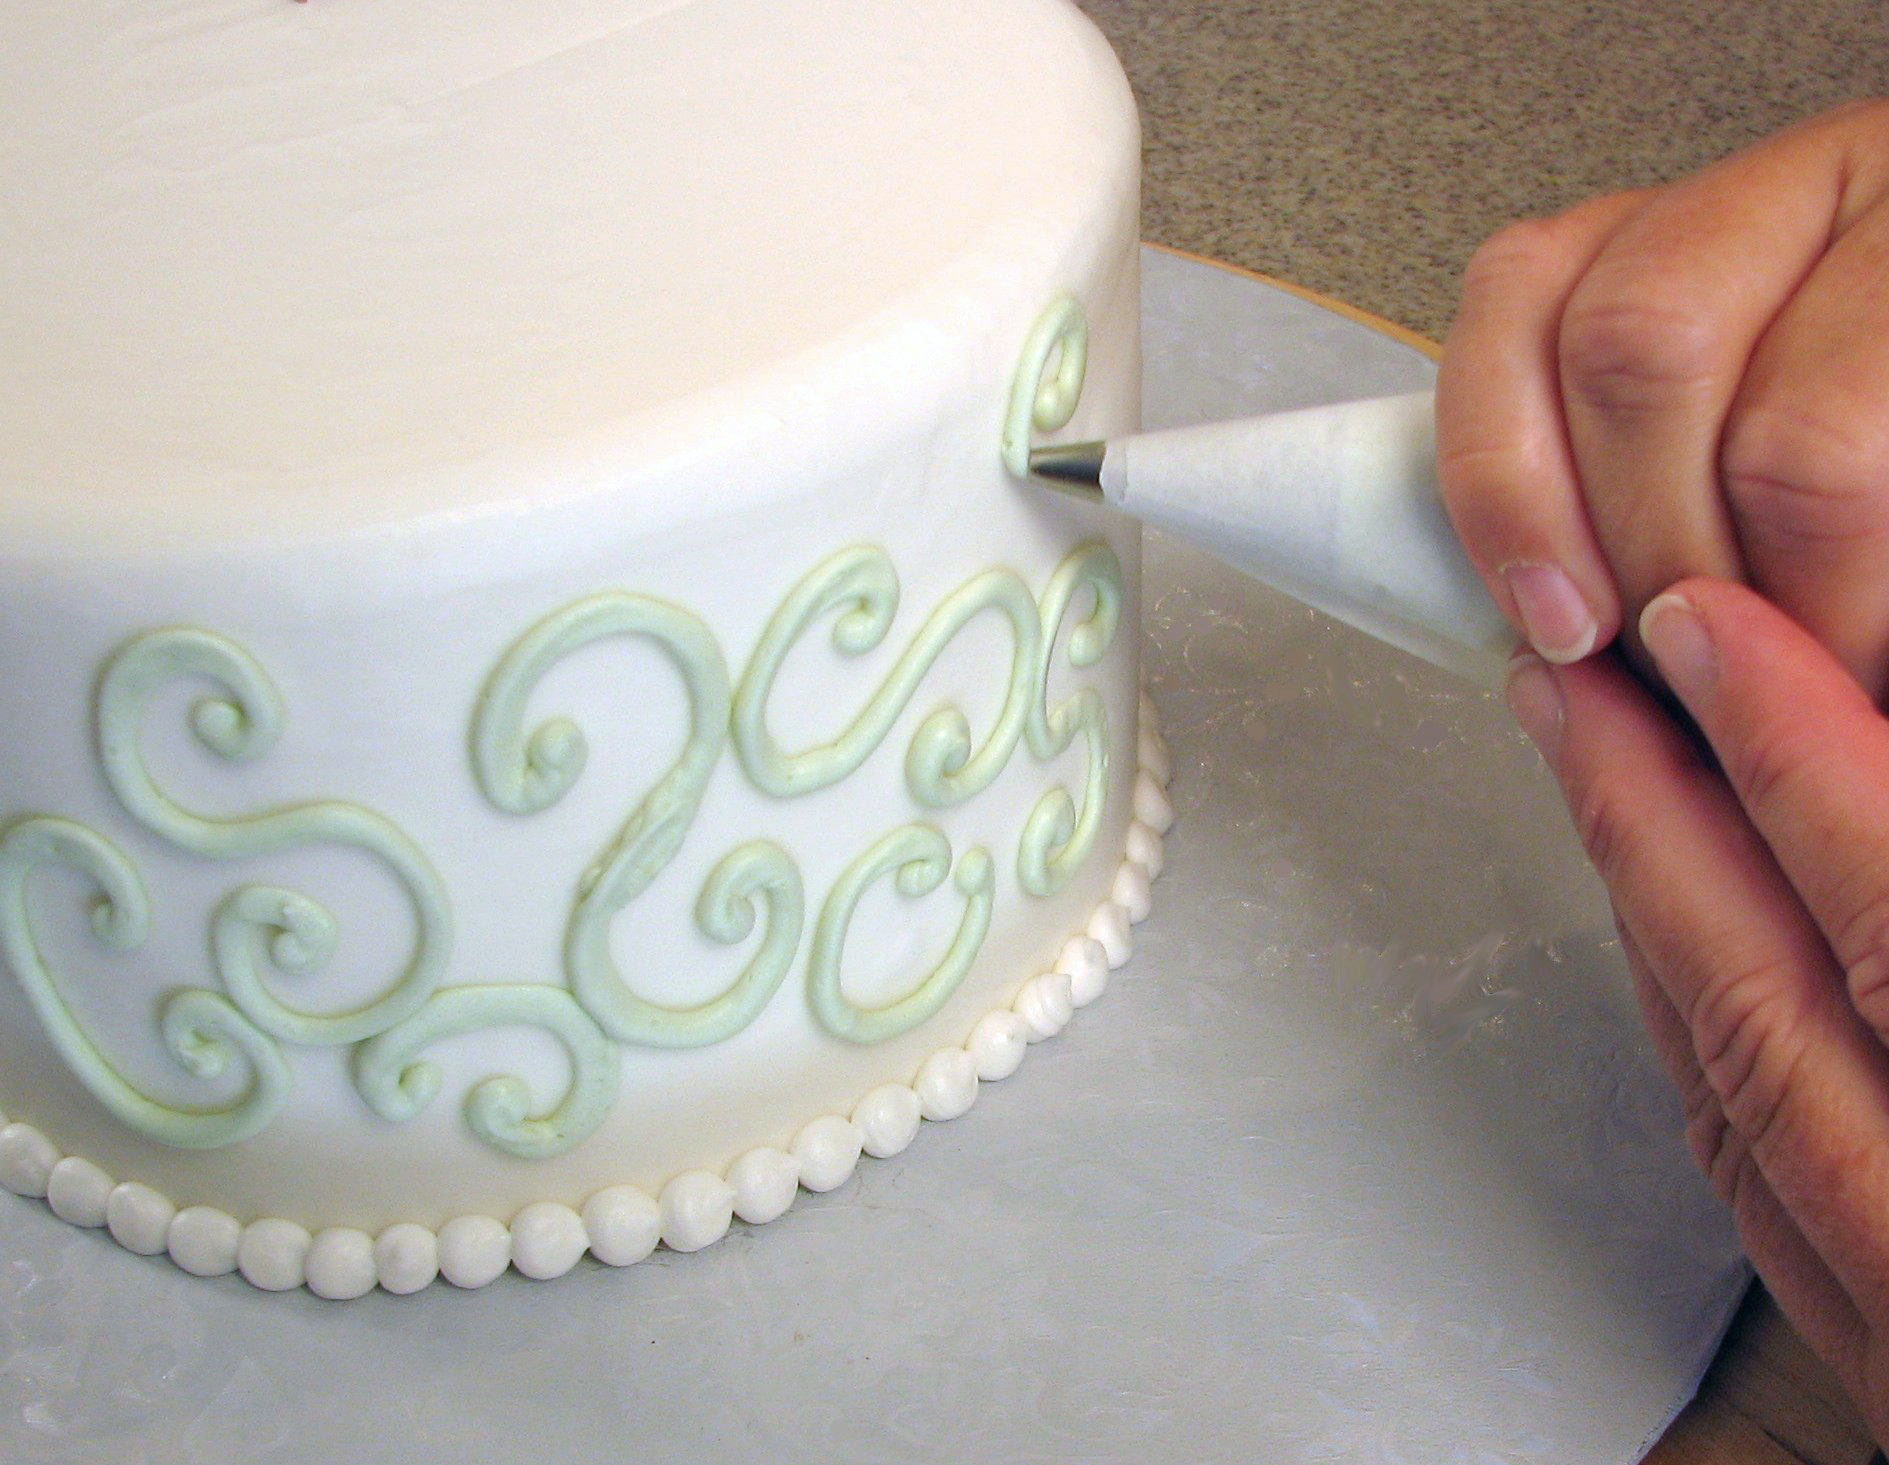 Cake Decorating Images : Cake decorating - Wikipedia